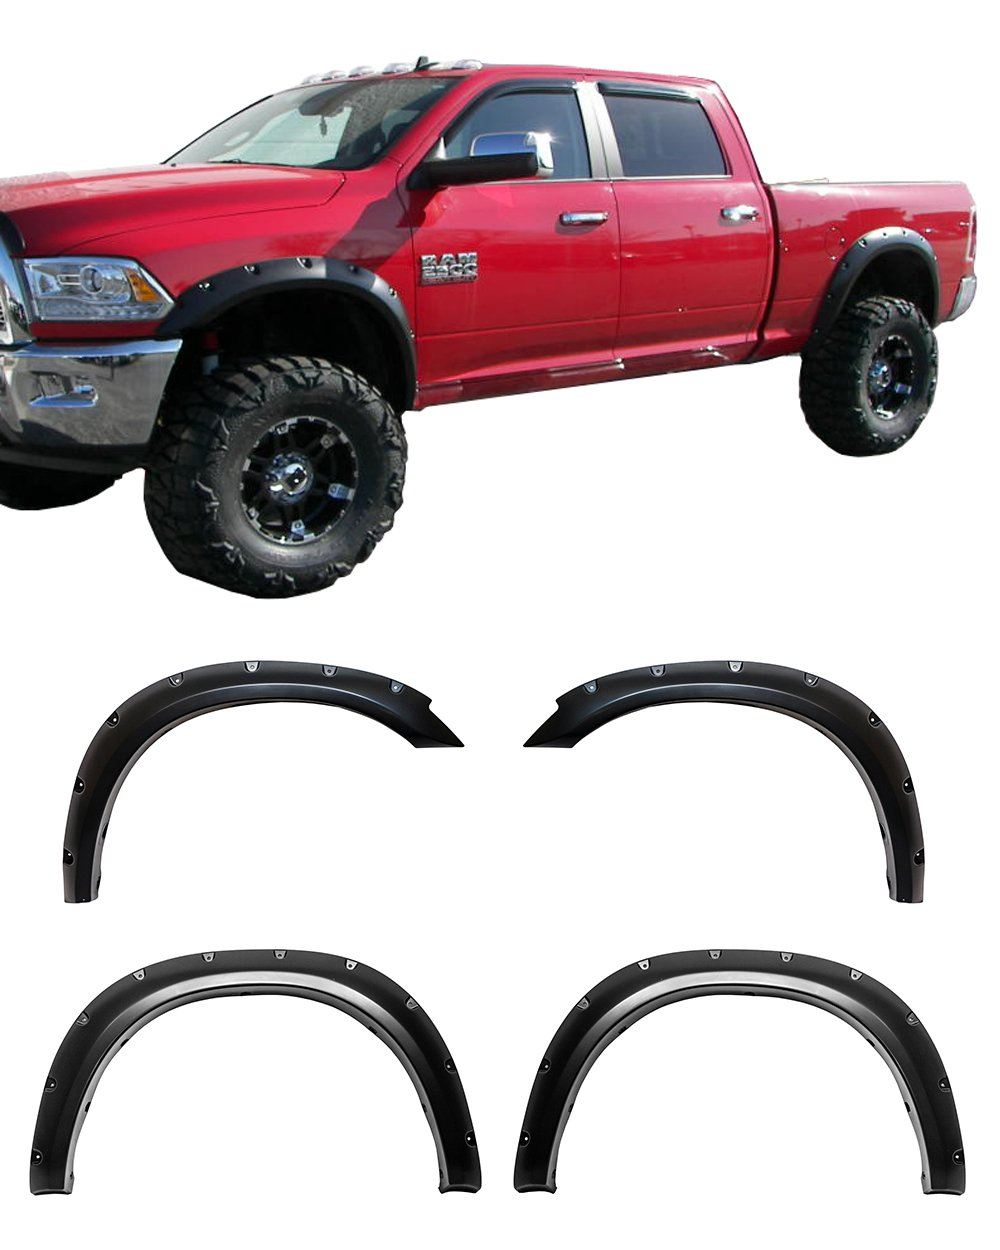 Galaxy Auto Fender Flares 2010-18 Dodge Ram 2500/3500 (Fleetside Models ONLY) - Pocket Riveted Style in Paintable Smooth Matte Black - 4 Piece Set